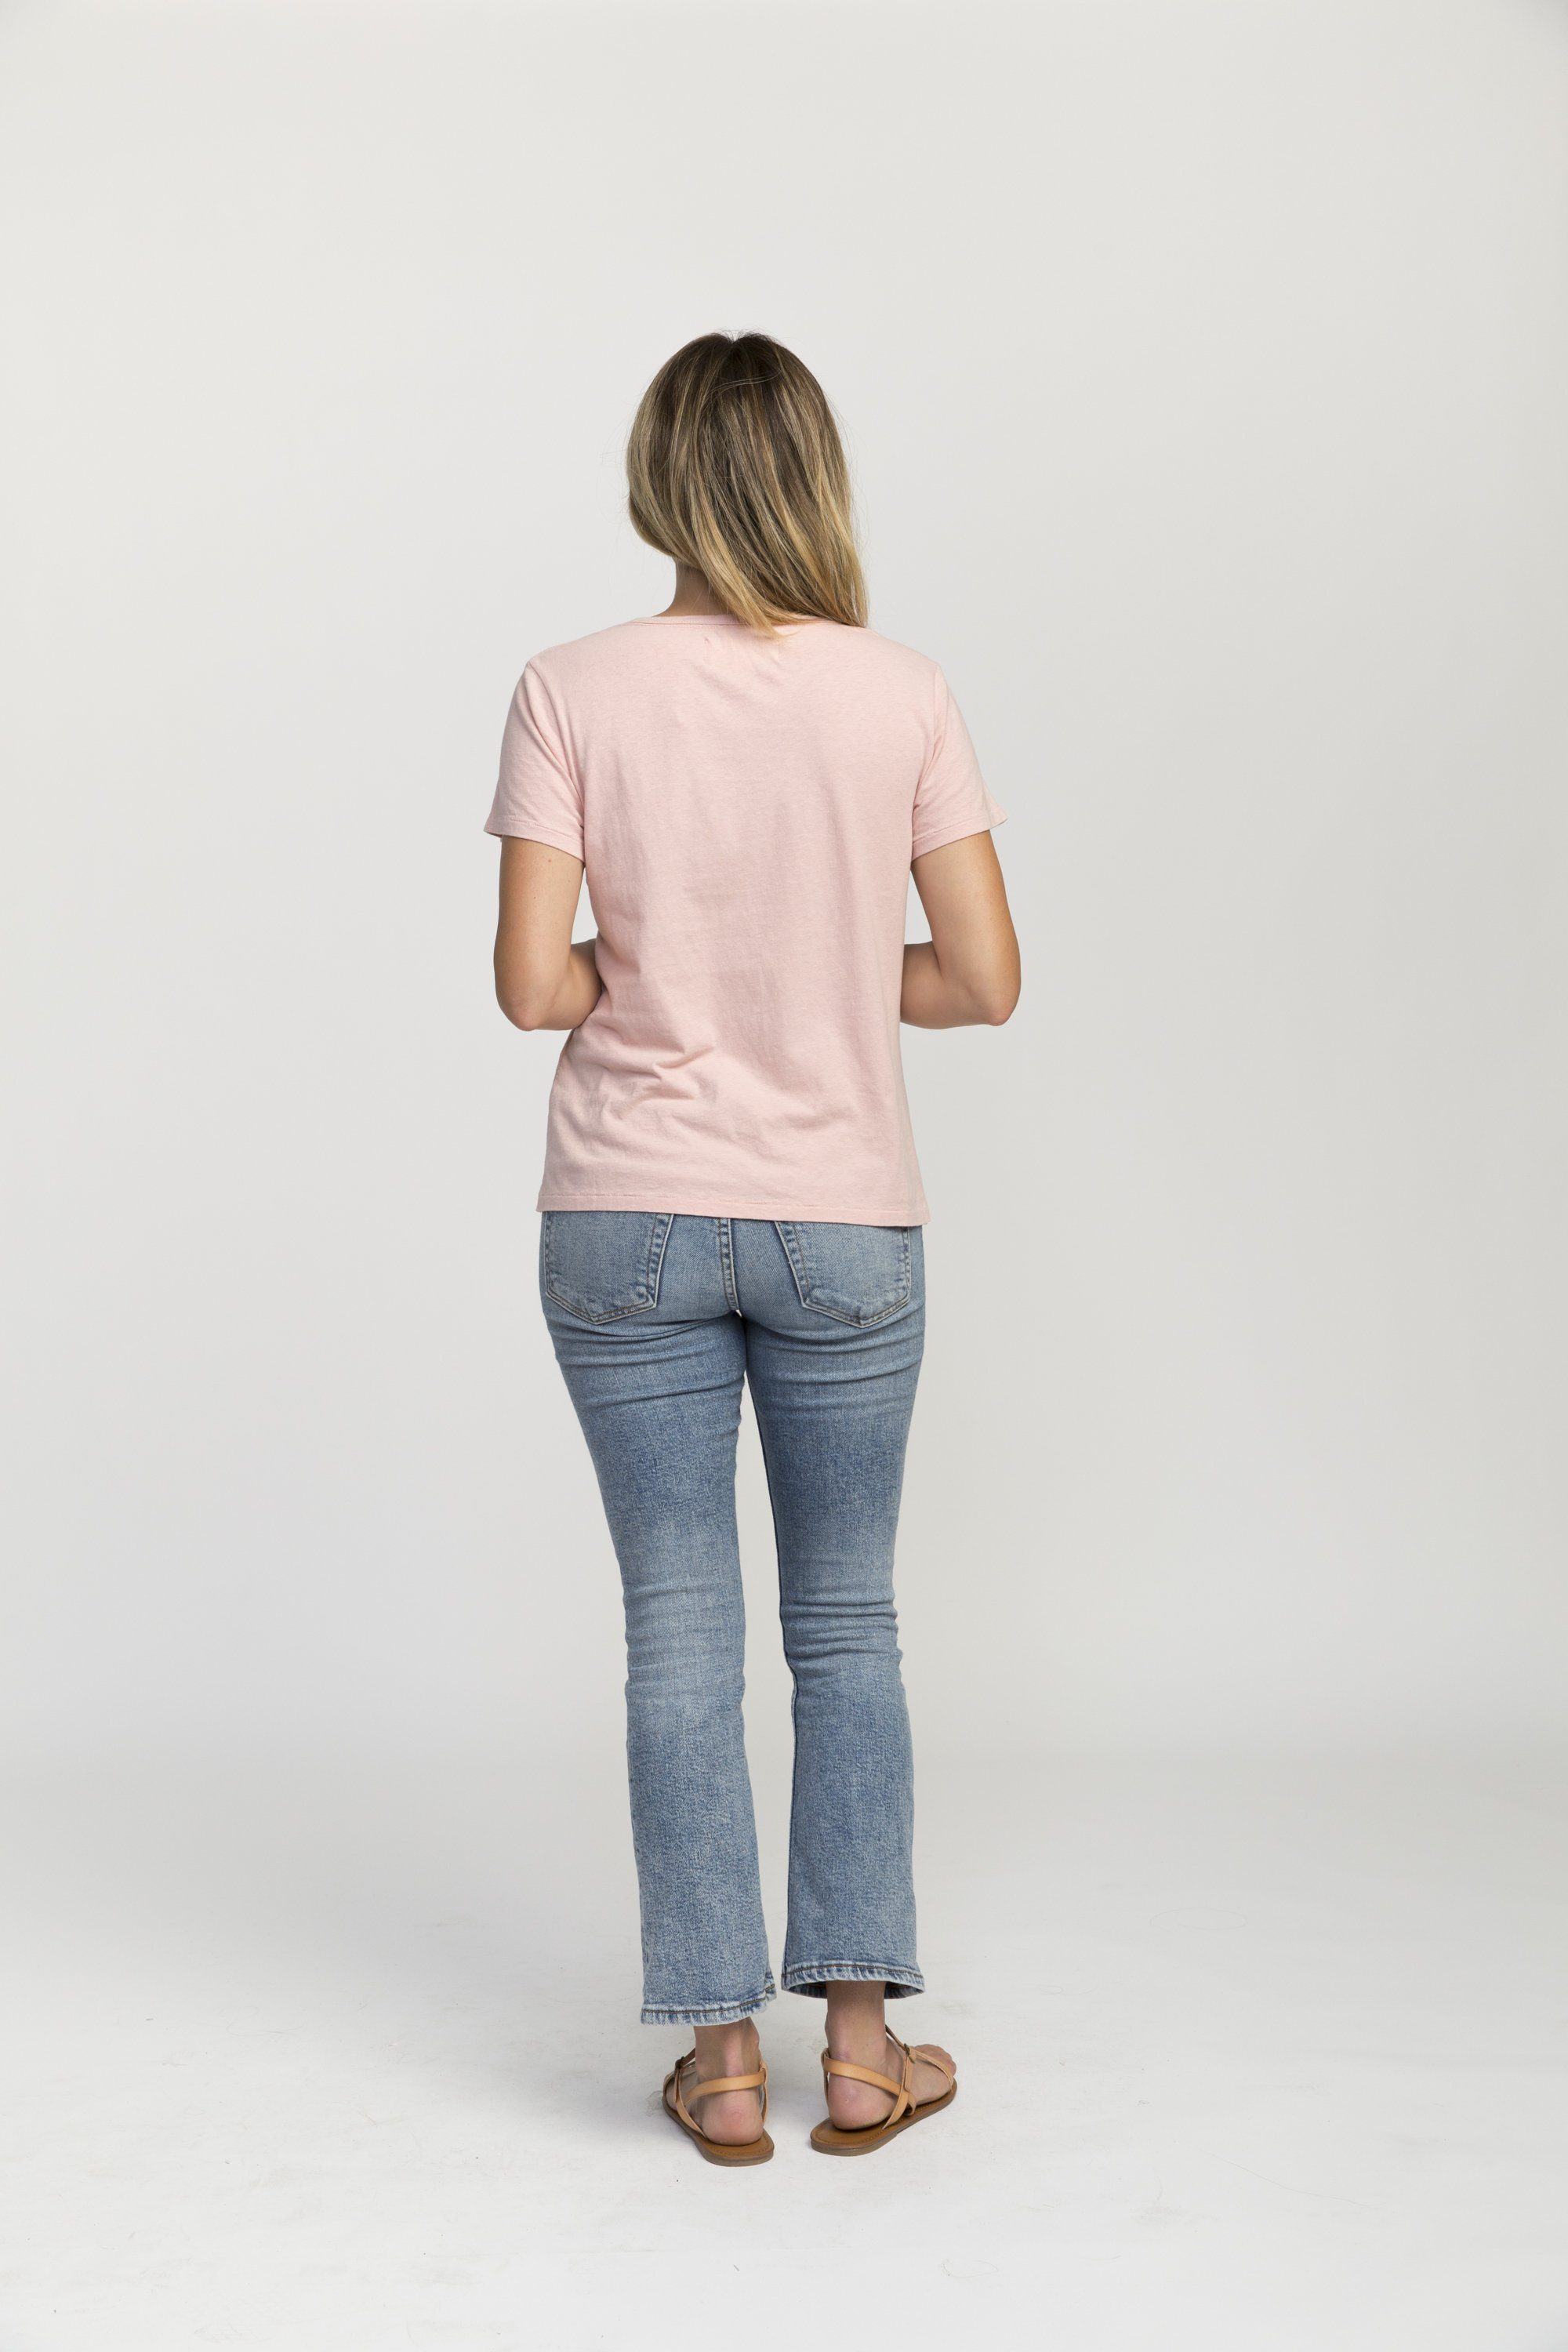 Jett T-shirt BLUSH PARADIS by Trovata - 3